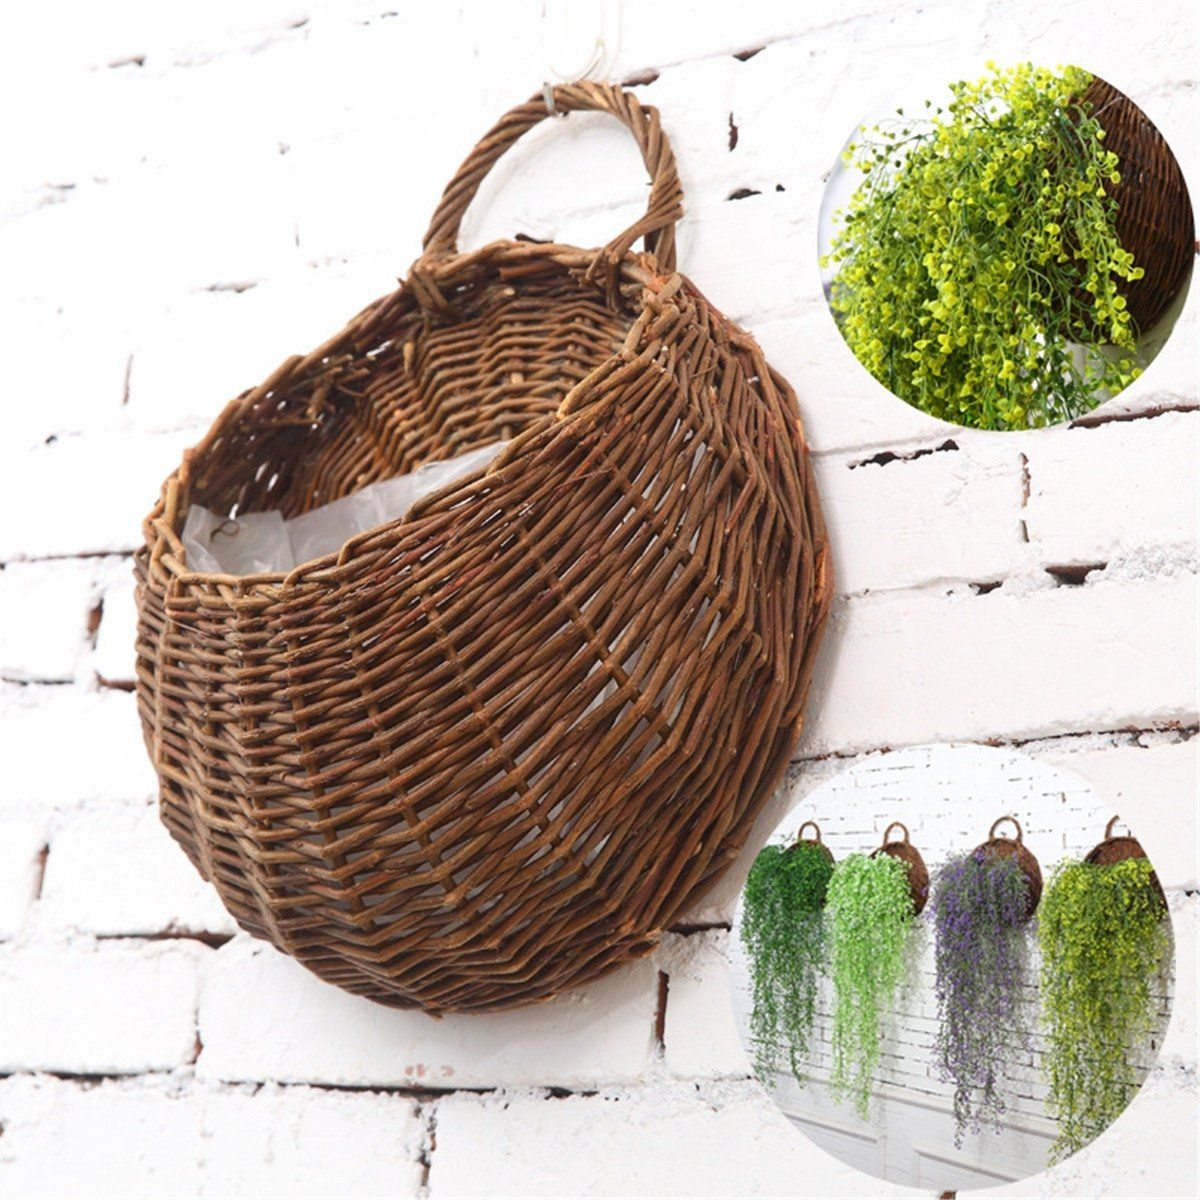 This Item Is Unavailable Baskets On Wall Hanging Plants Plants For Hanging Baskets